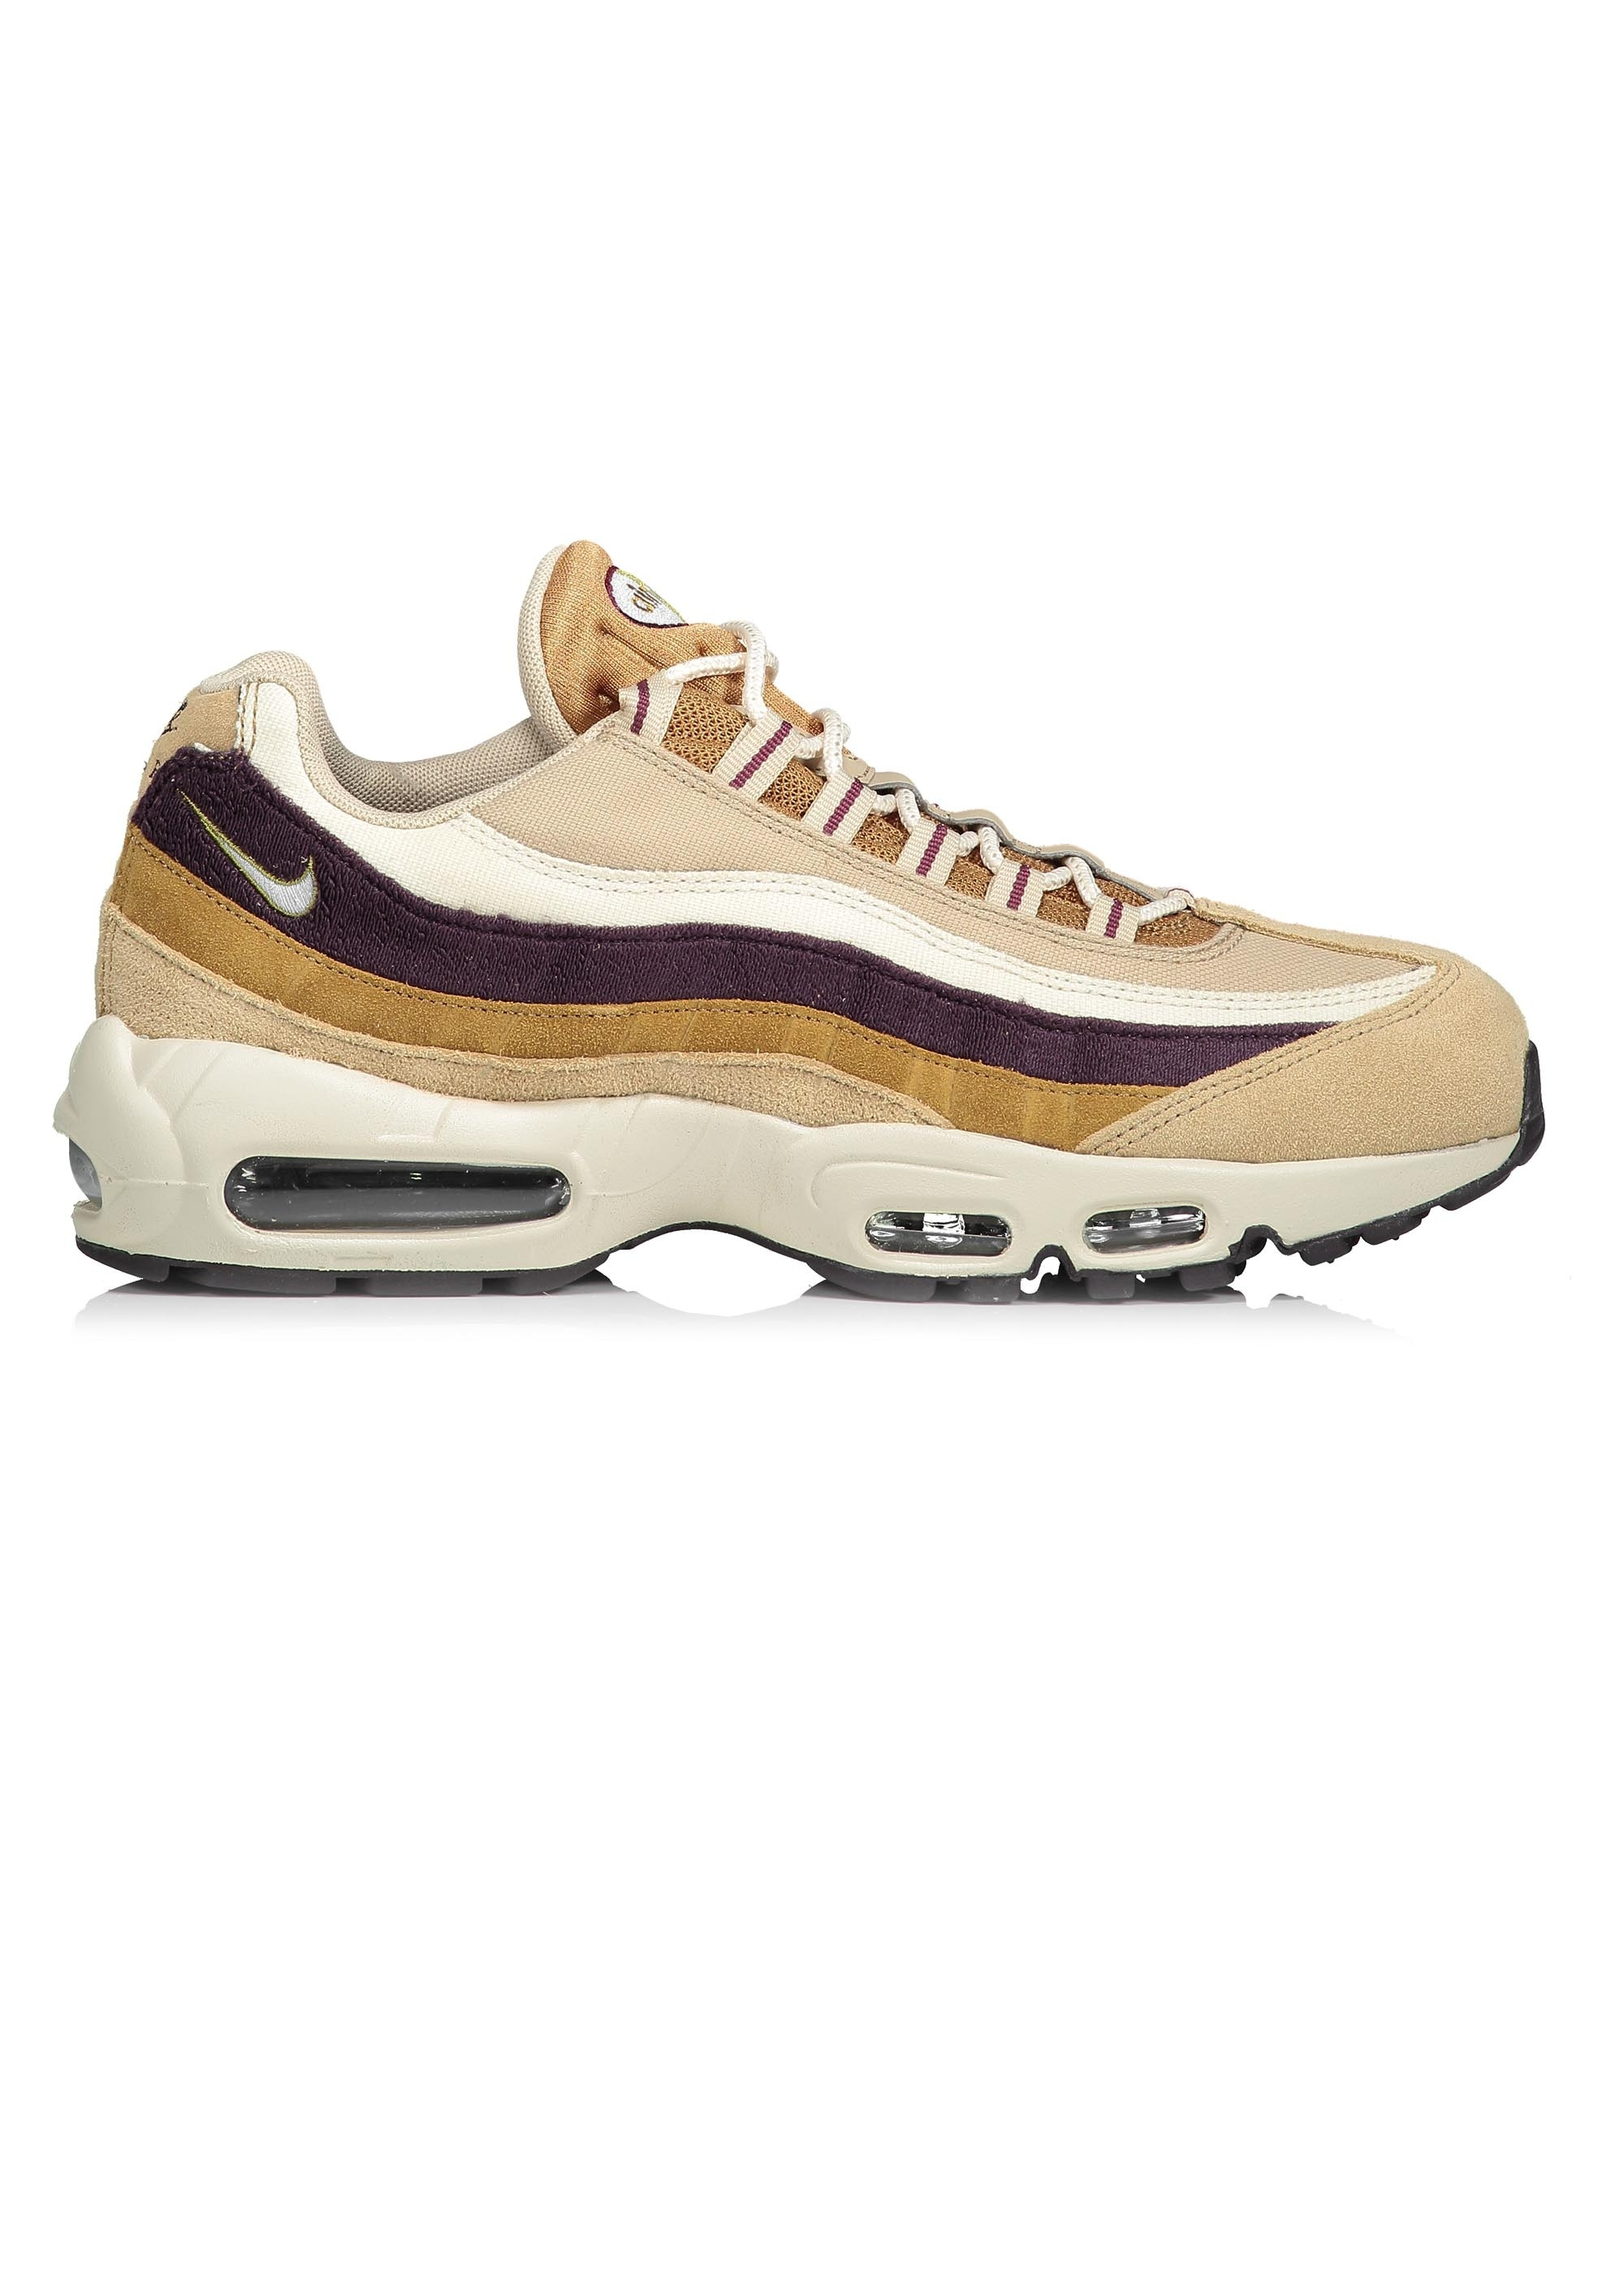 finest selection 59f1e 3671c Nike Footwear Air Max 95 PRM - Desert / Royal